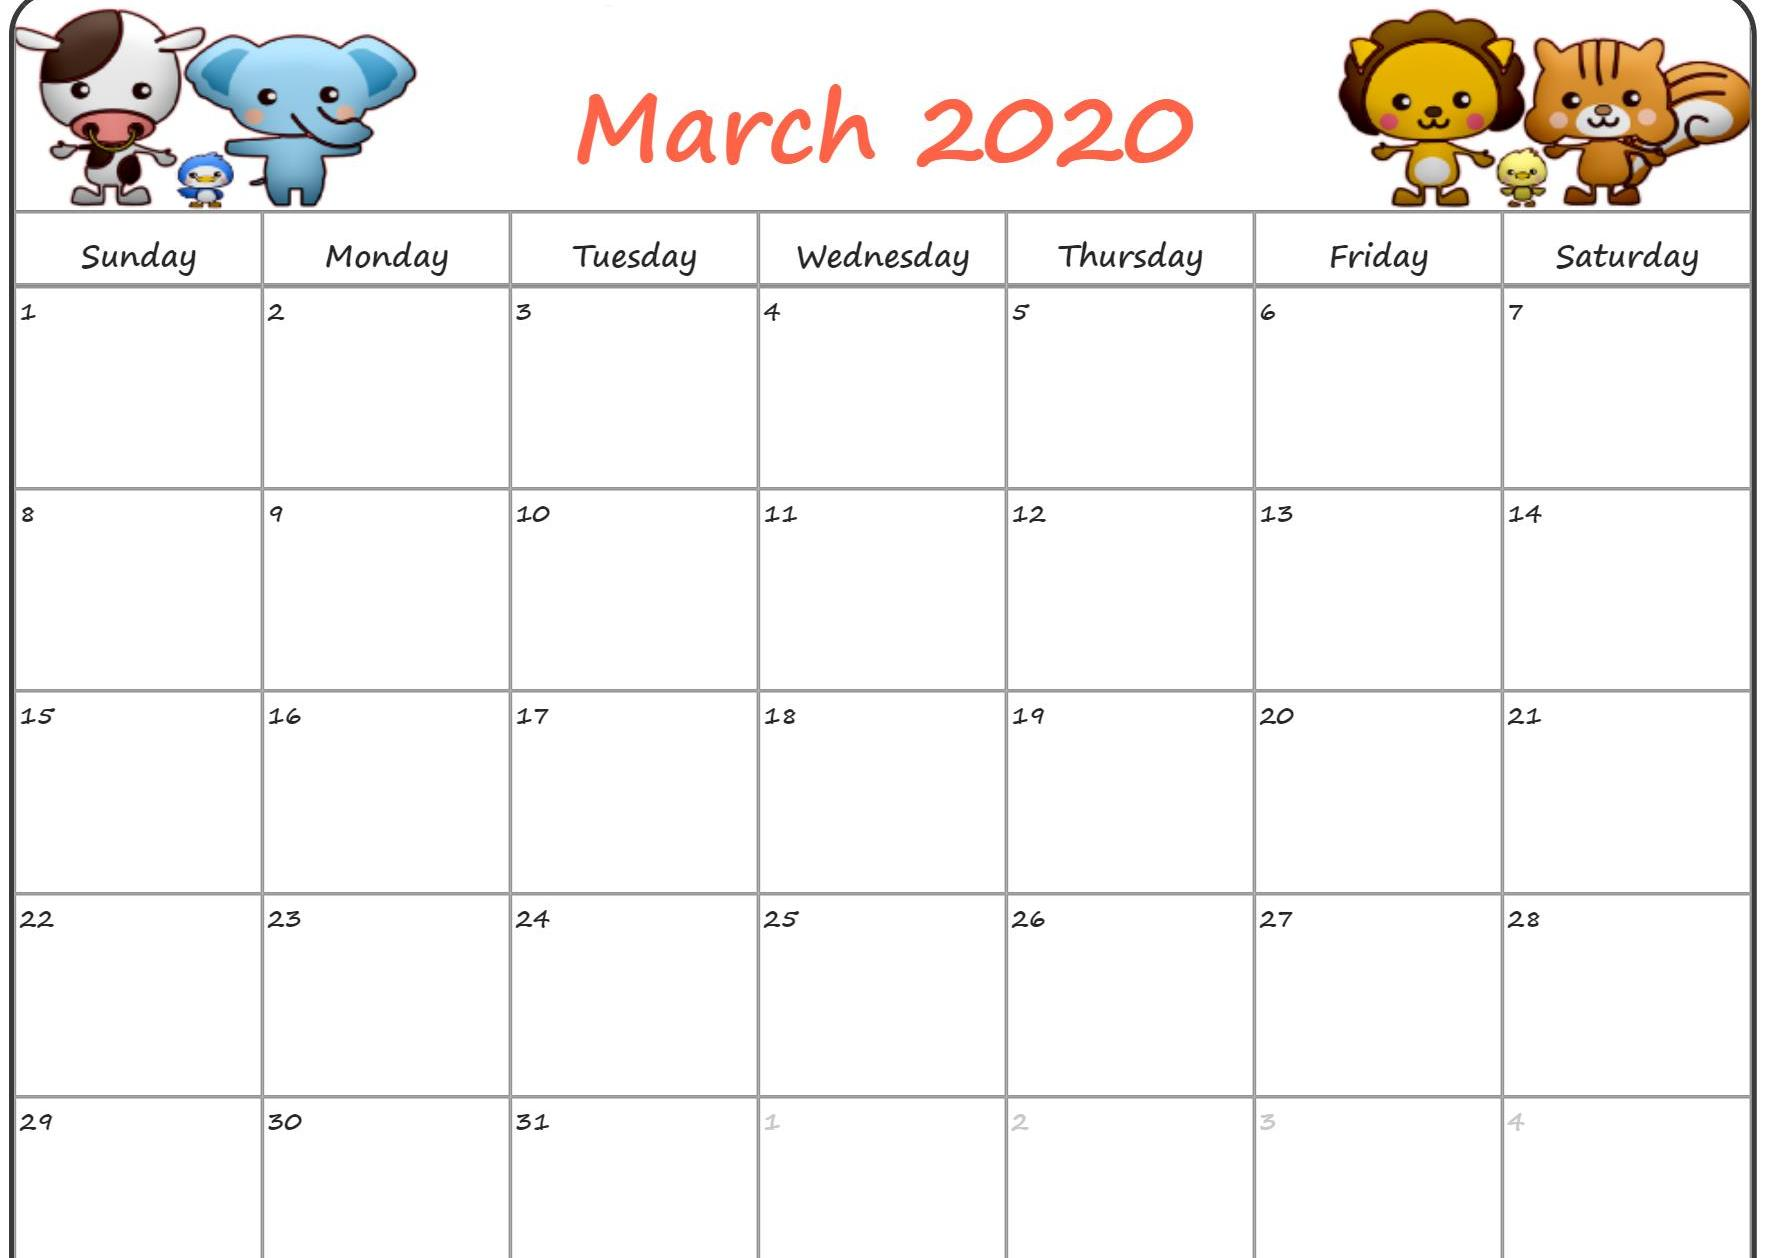 Floral March Calendar 2020 Cute Wallpaper For Desktop Laptop Iphone